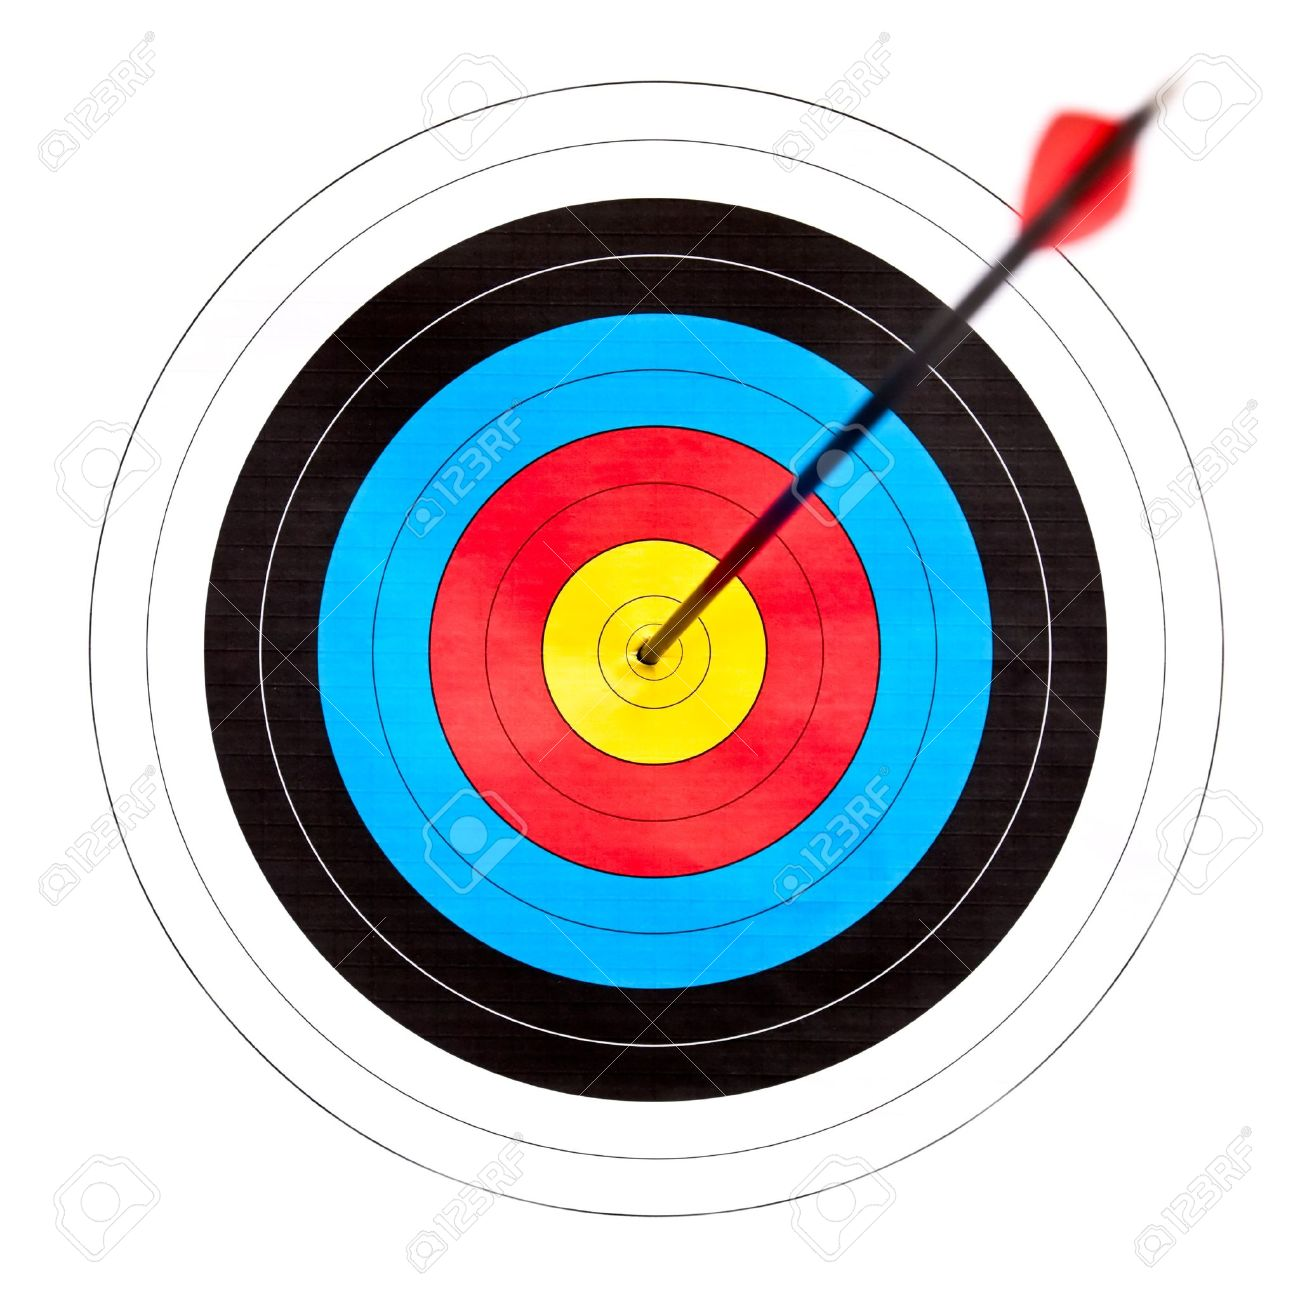 Archery Target With Arrow In The Bullseye Stock Photo Picture And